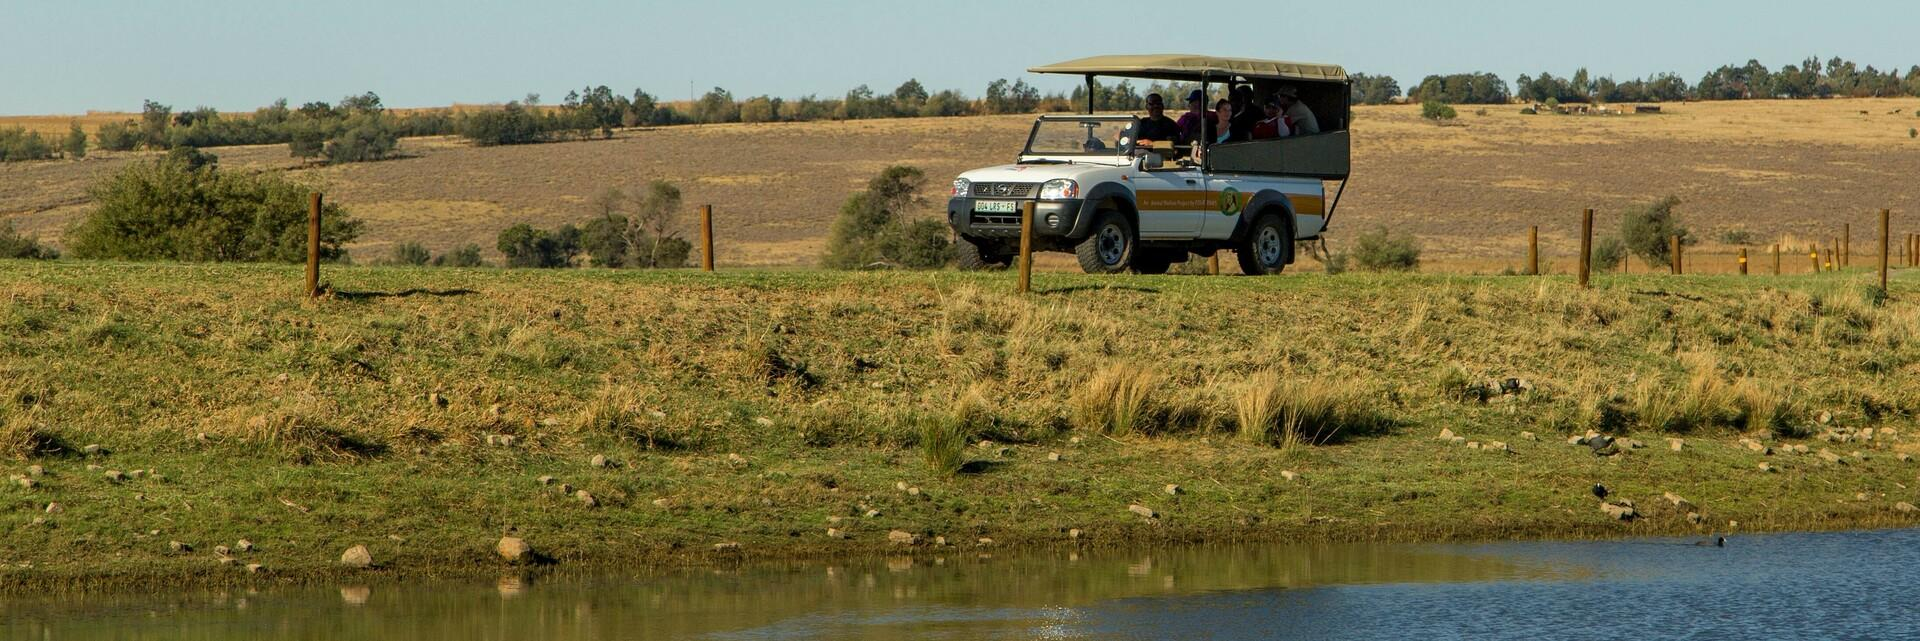 Guests on a game drive